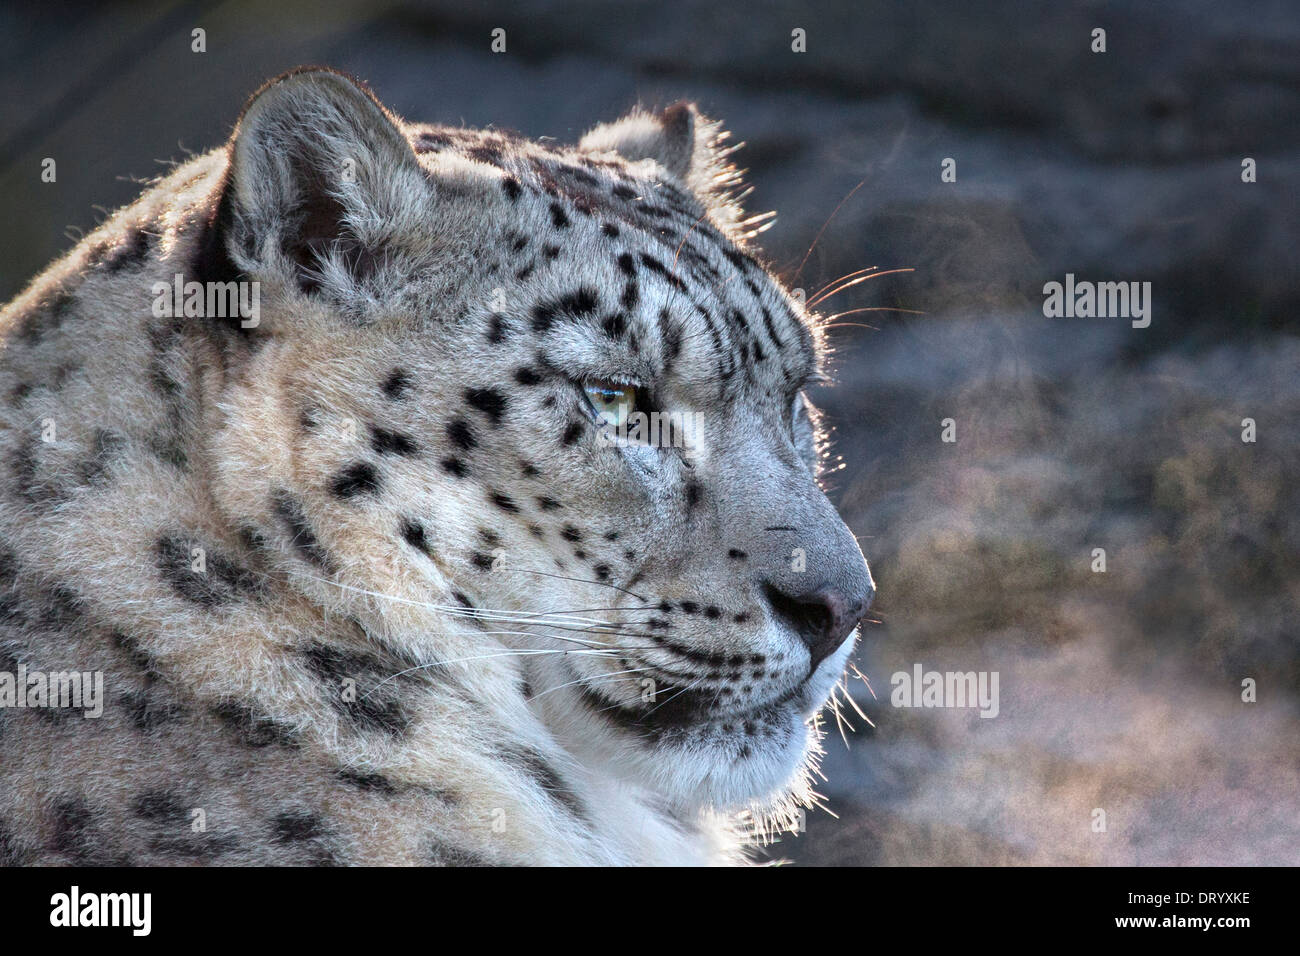 Snow Leopard with visible breath - Stock Image